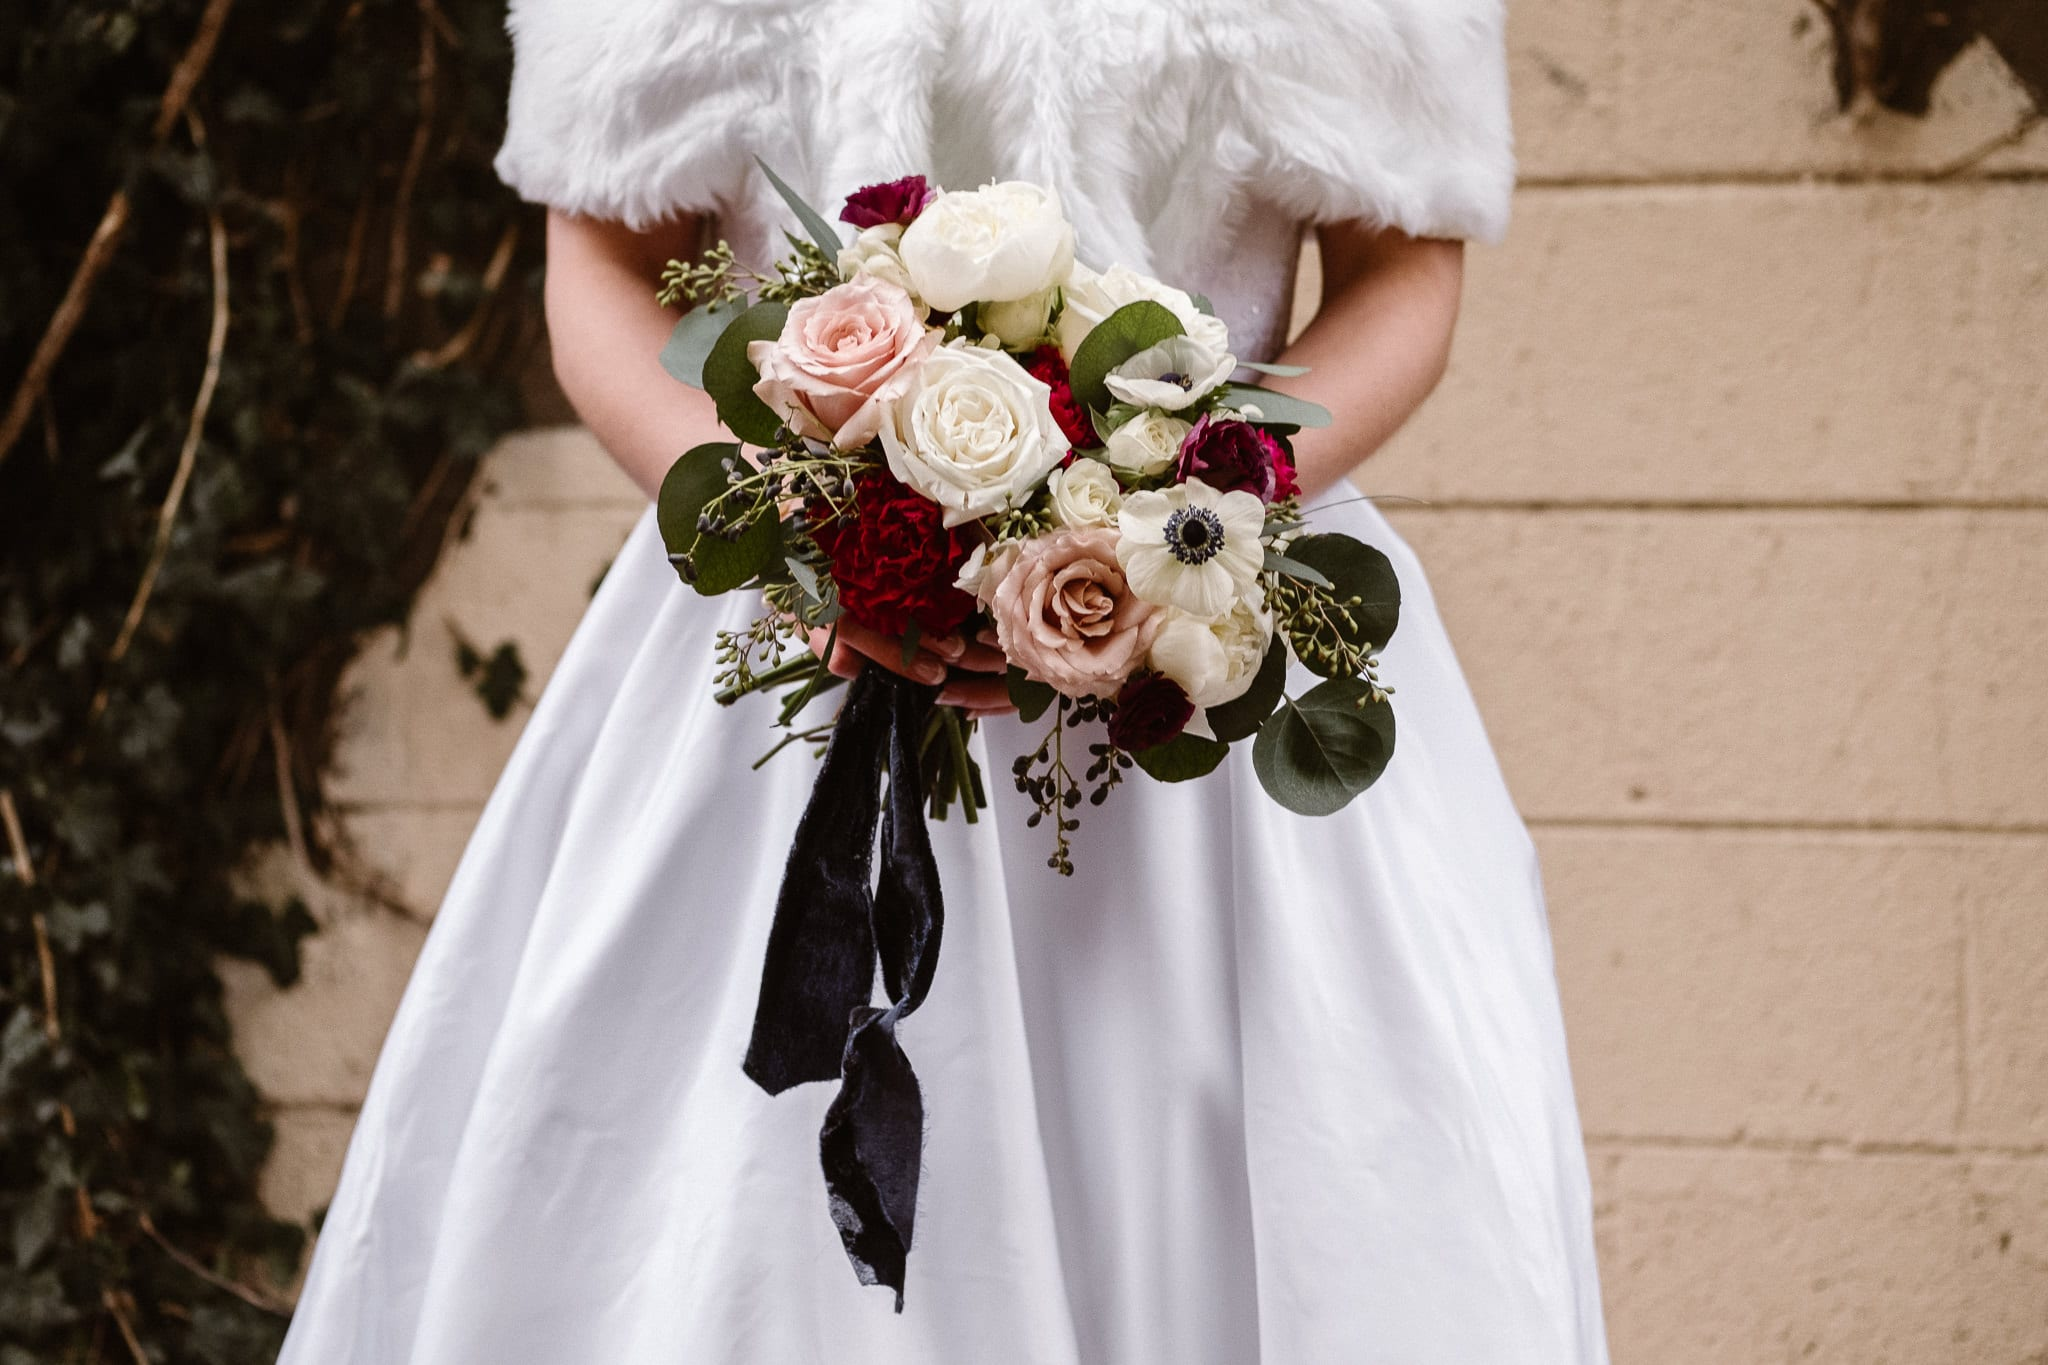 Rembrandt Yard wedding photographer, Boulder wedding photographer, Colorado Jewish wedding, bride and groom portraits in downtown Boulder, bridal bouquet with roses in muted colors